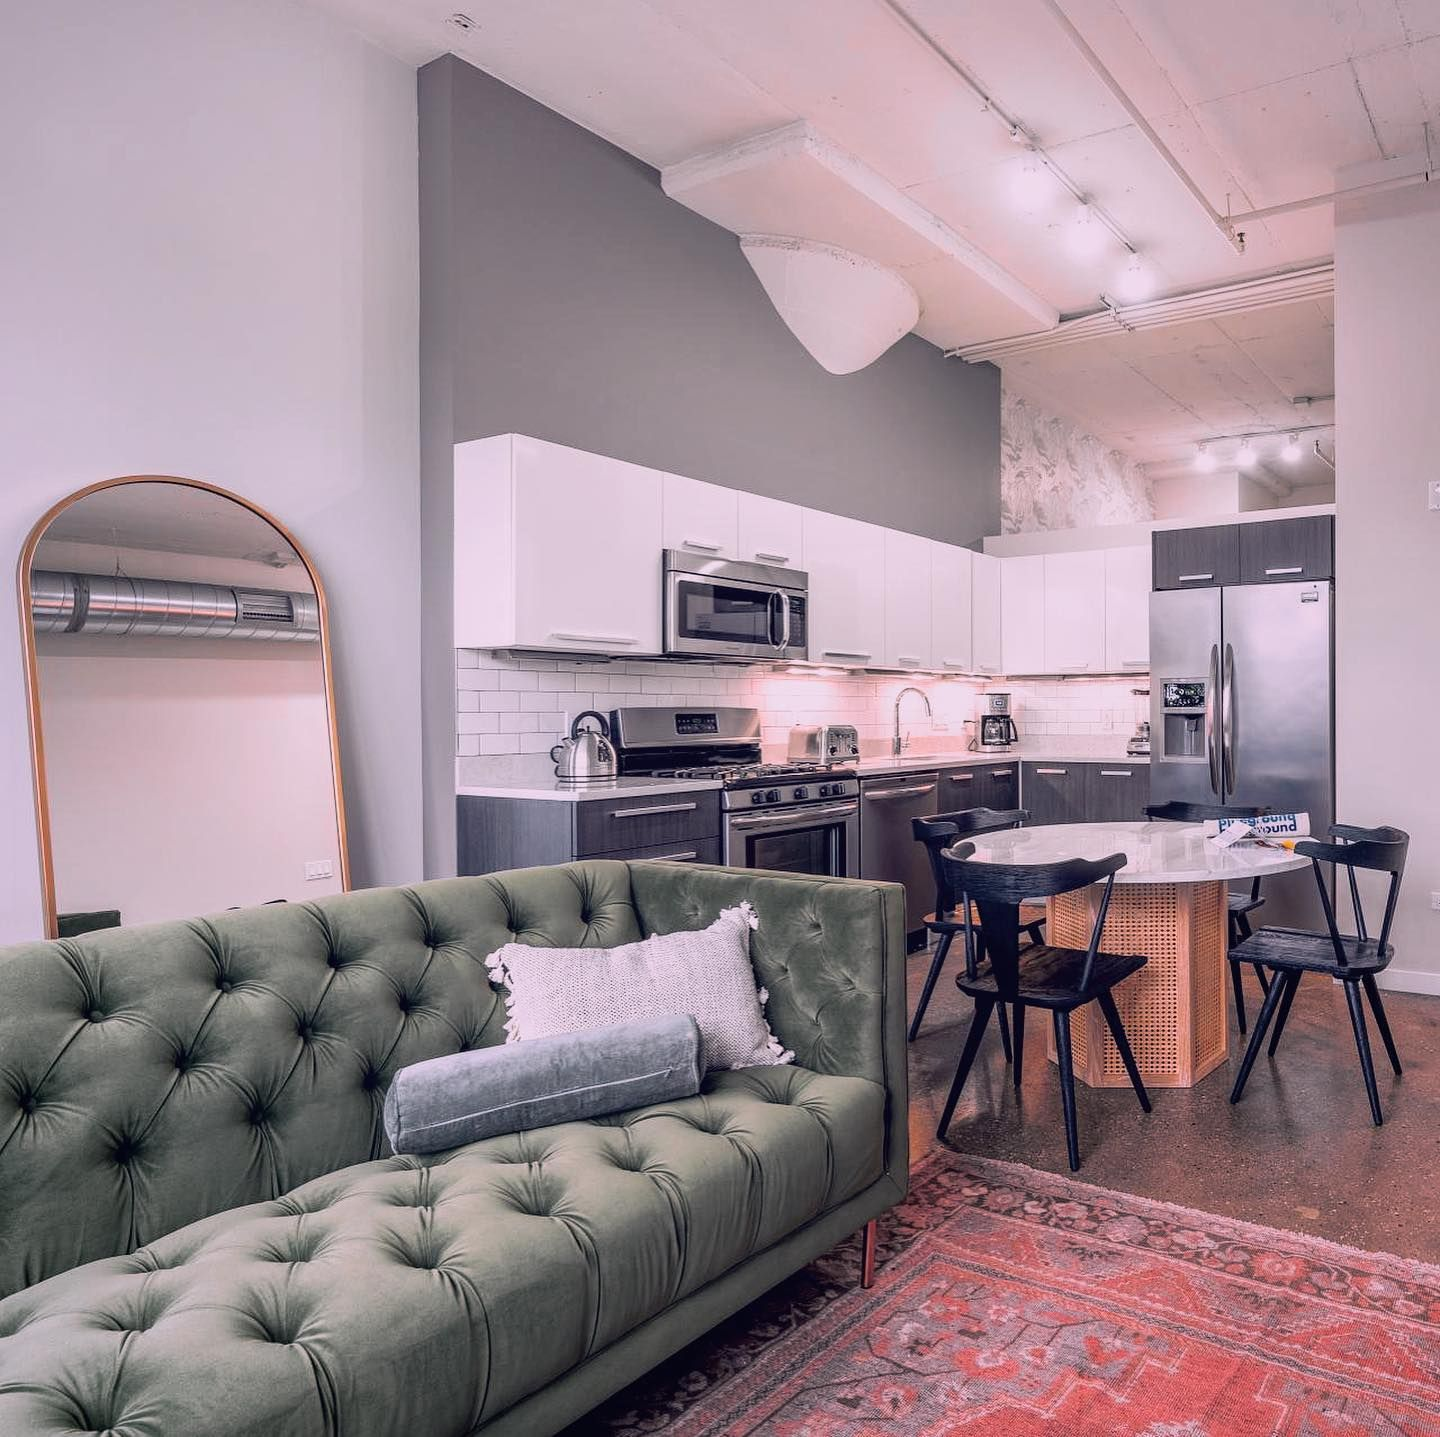 Fully furnished West Loop loft apartment for rent in